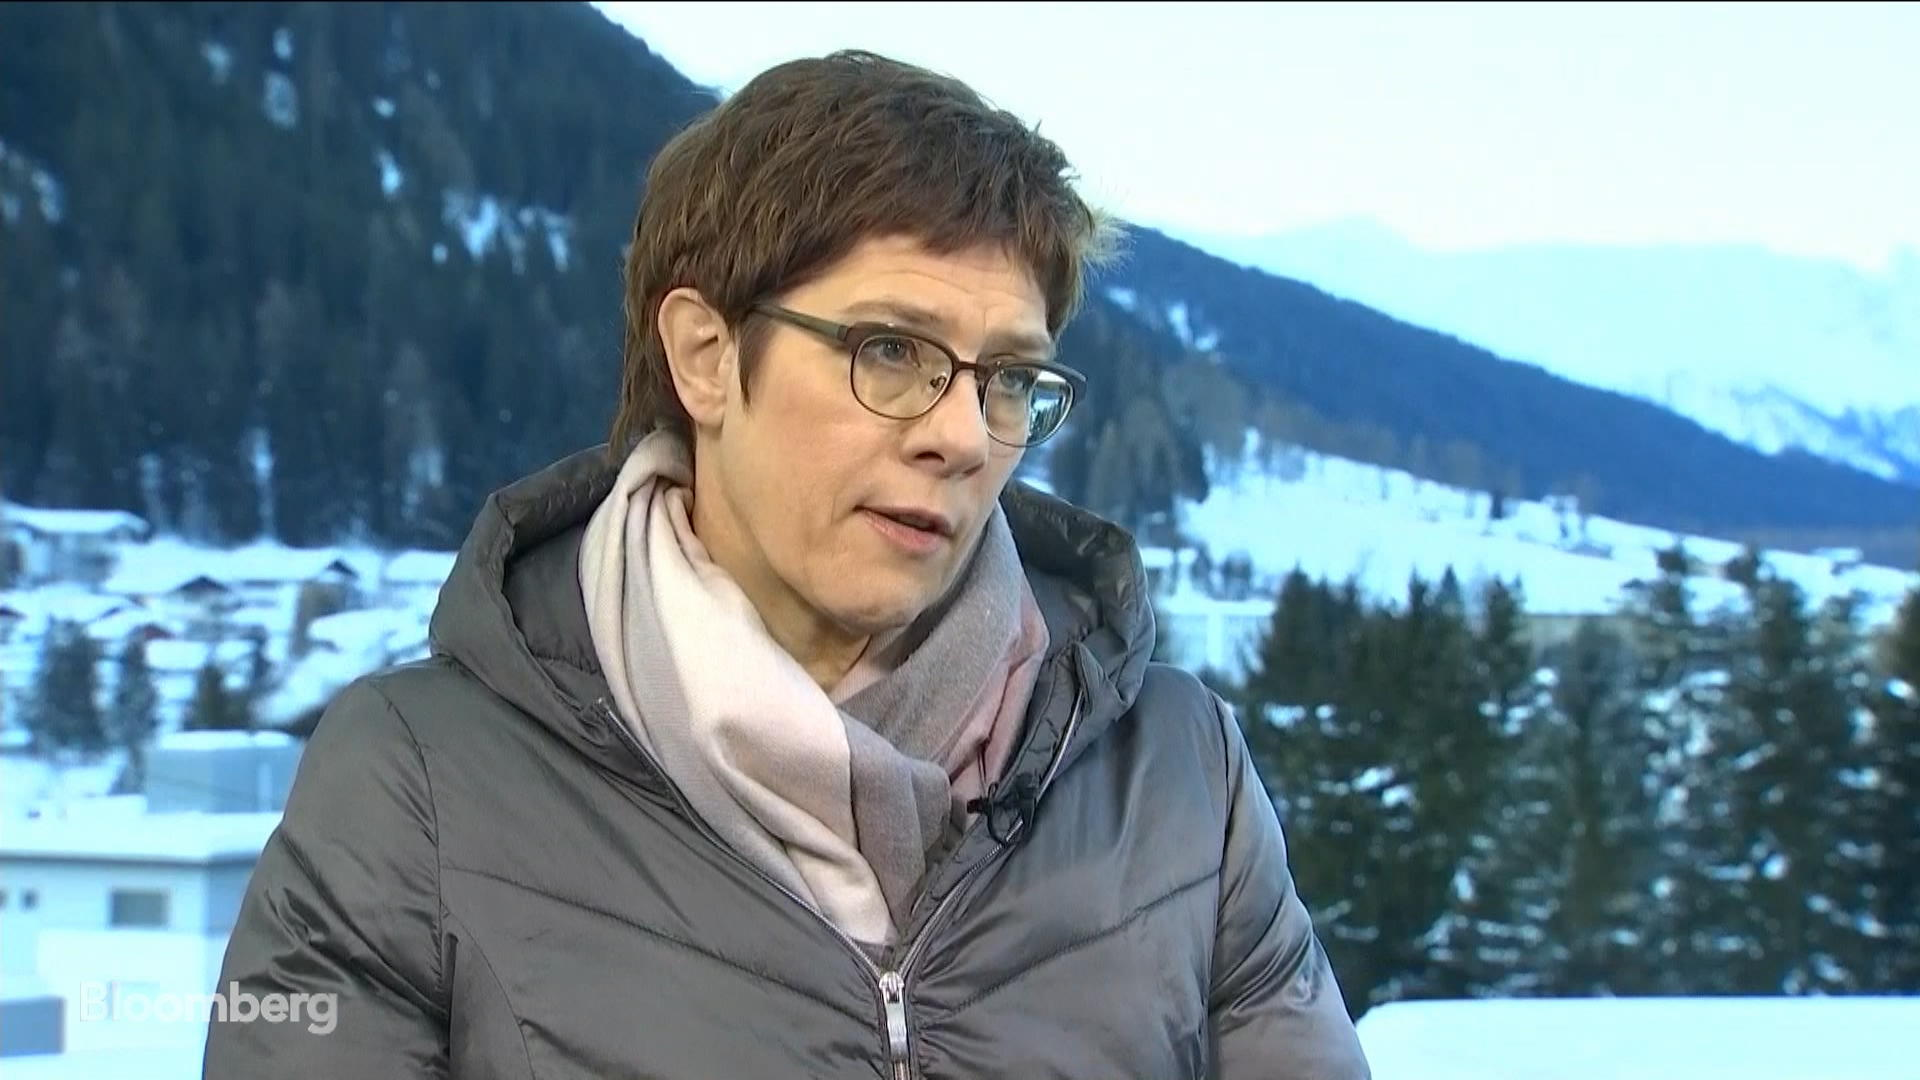 CDU Leader Annegret Kramp-Karrenbauer on Middle East, Syrian Humanitarian Situation, Government